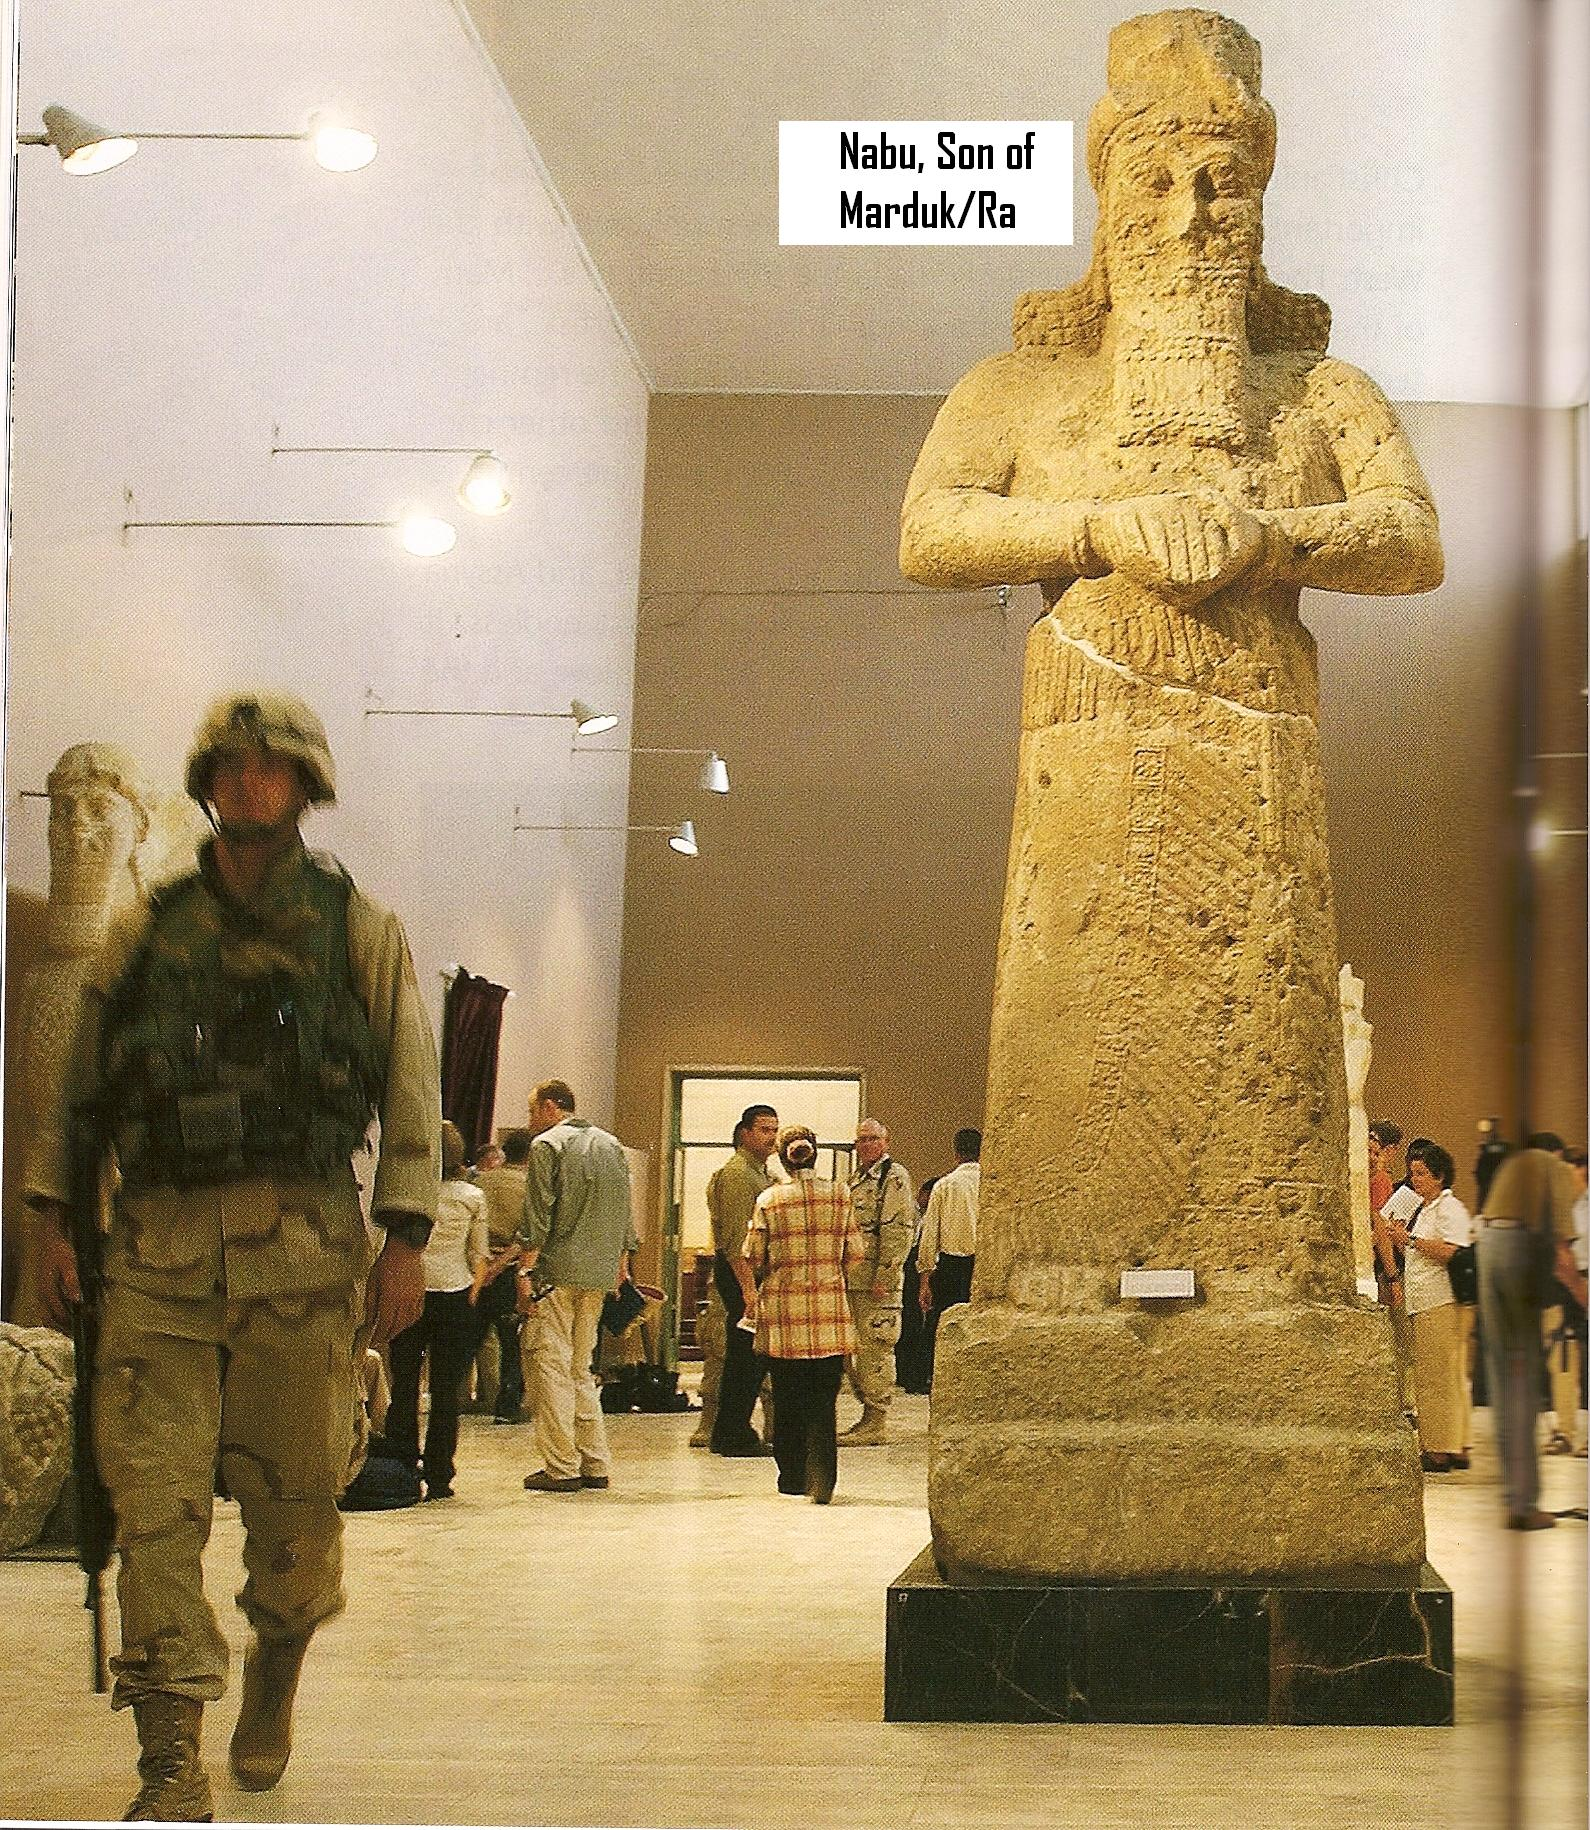 http://www.mesopotamiangods.com/wp-content/uploads/2014/08/2bb-god-Nabu-US-Army-1.jpg